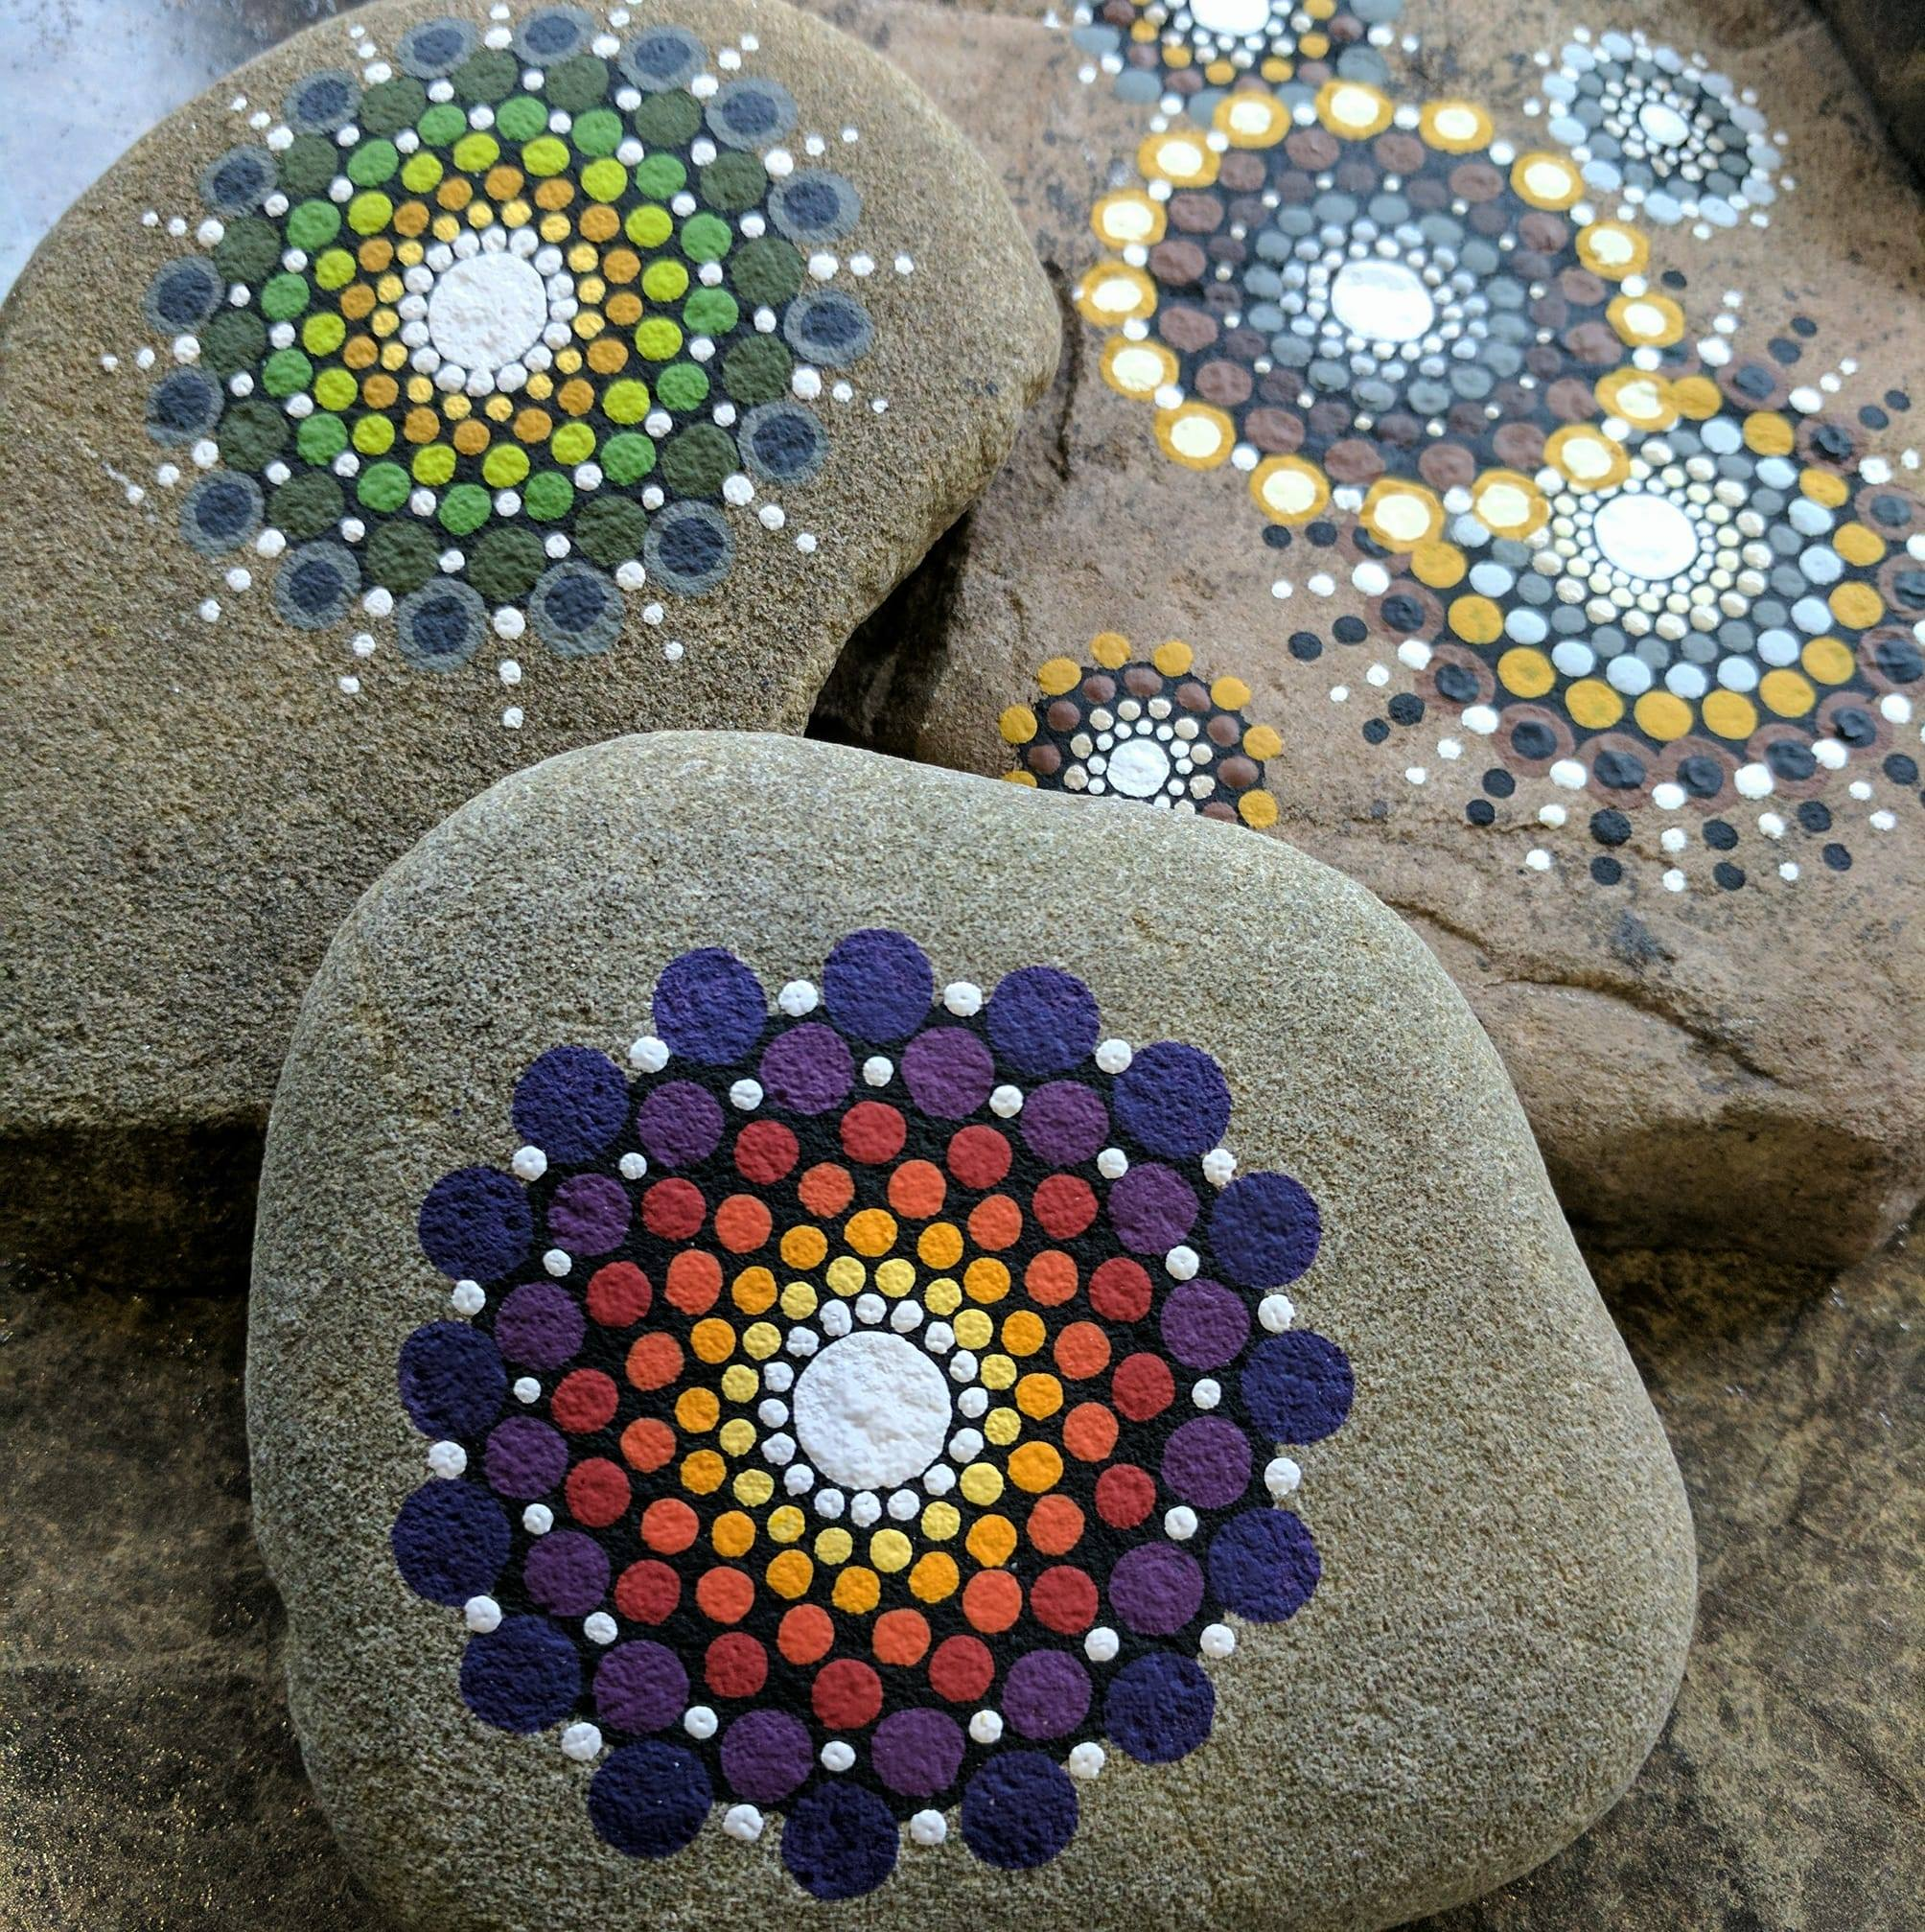 rocks painted